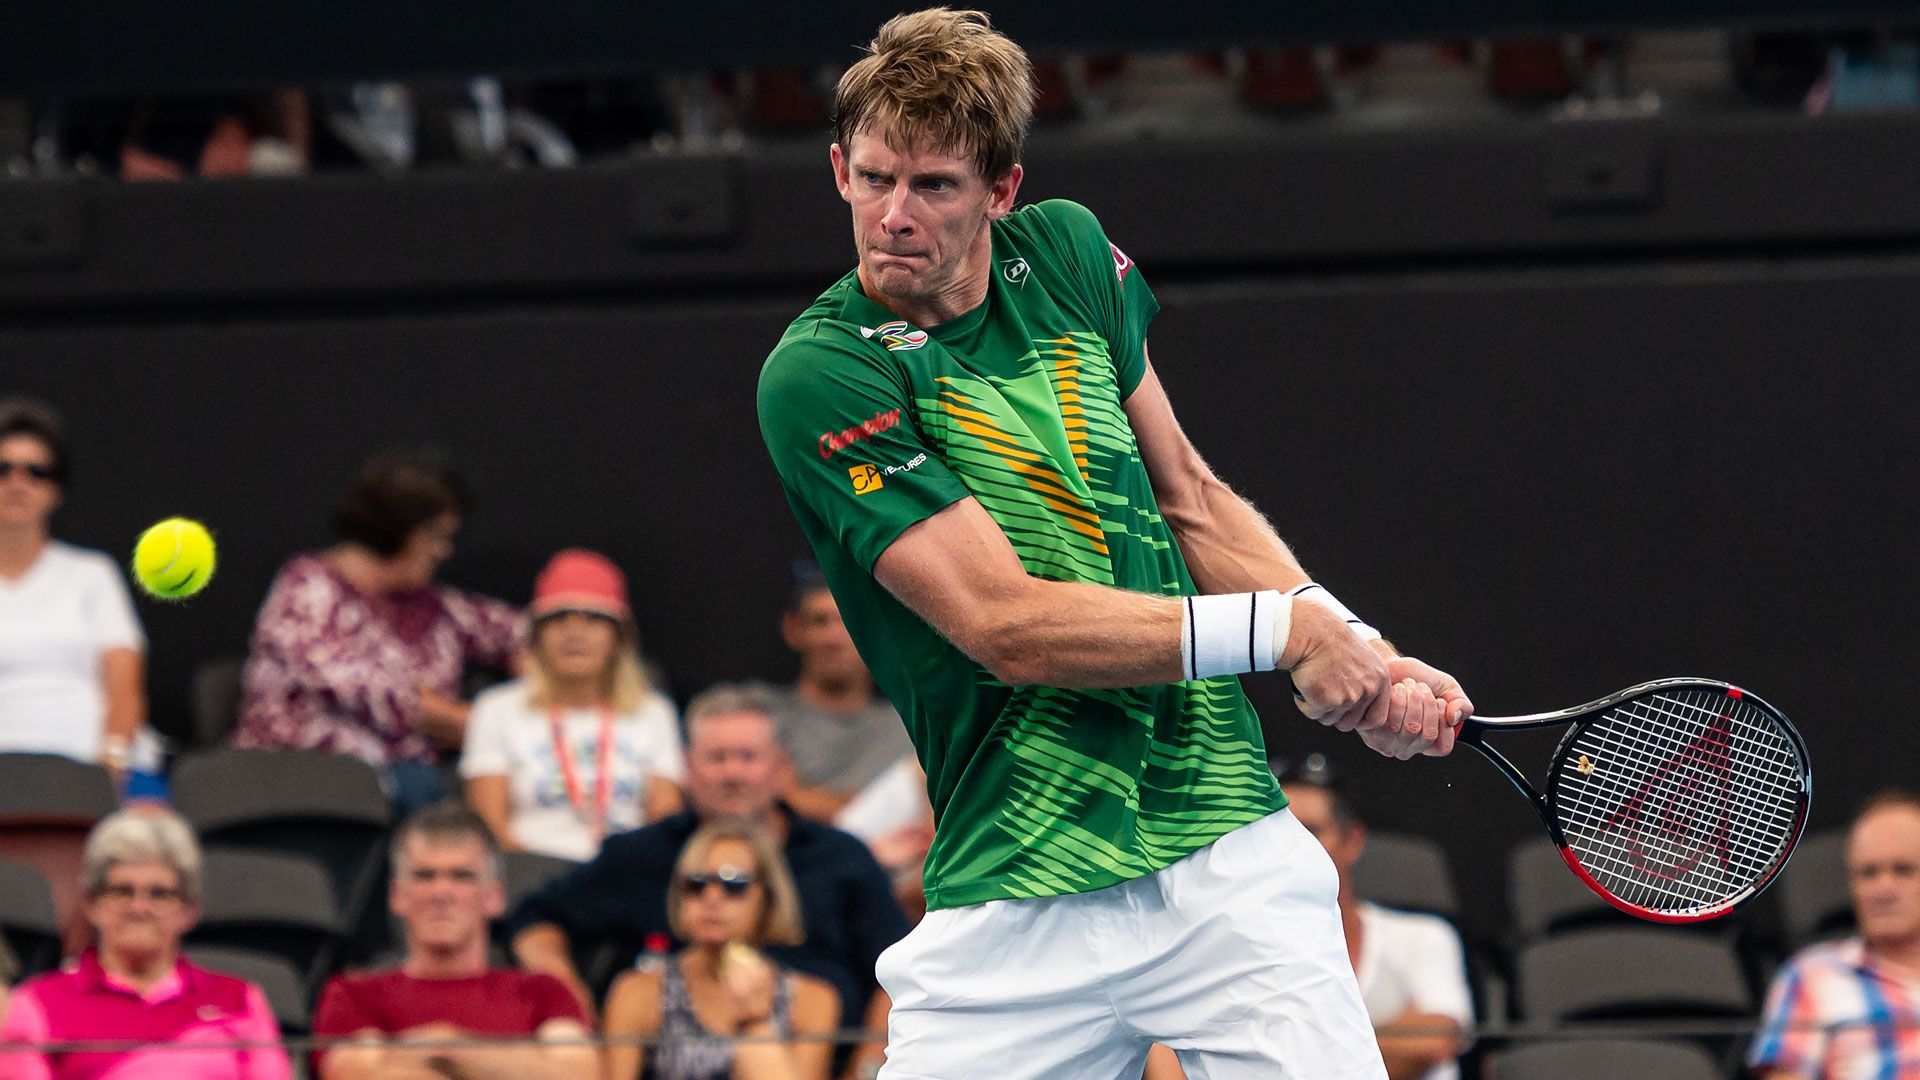 Kevin Anderson Right Knee Procedure Announcement February 2020 Atp Tour Tennis Kevin Anderson Announced Toda In 2020 Knee Injury Ankle Surgery Meniscus Tear